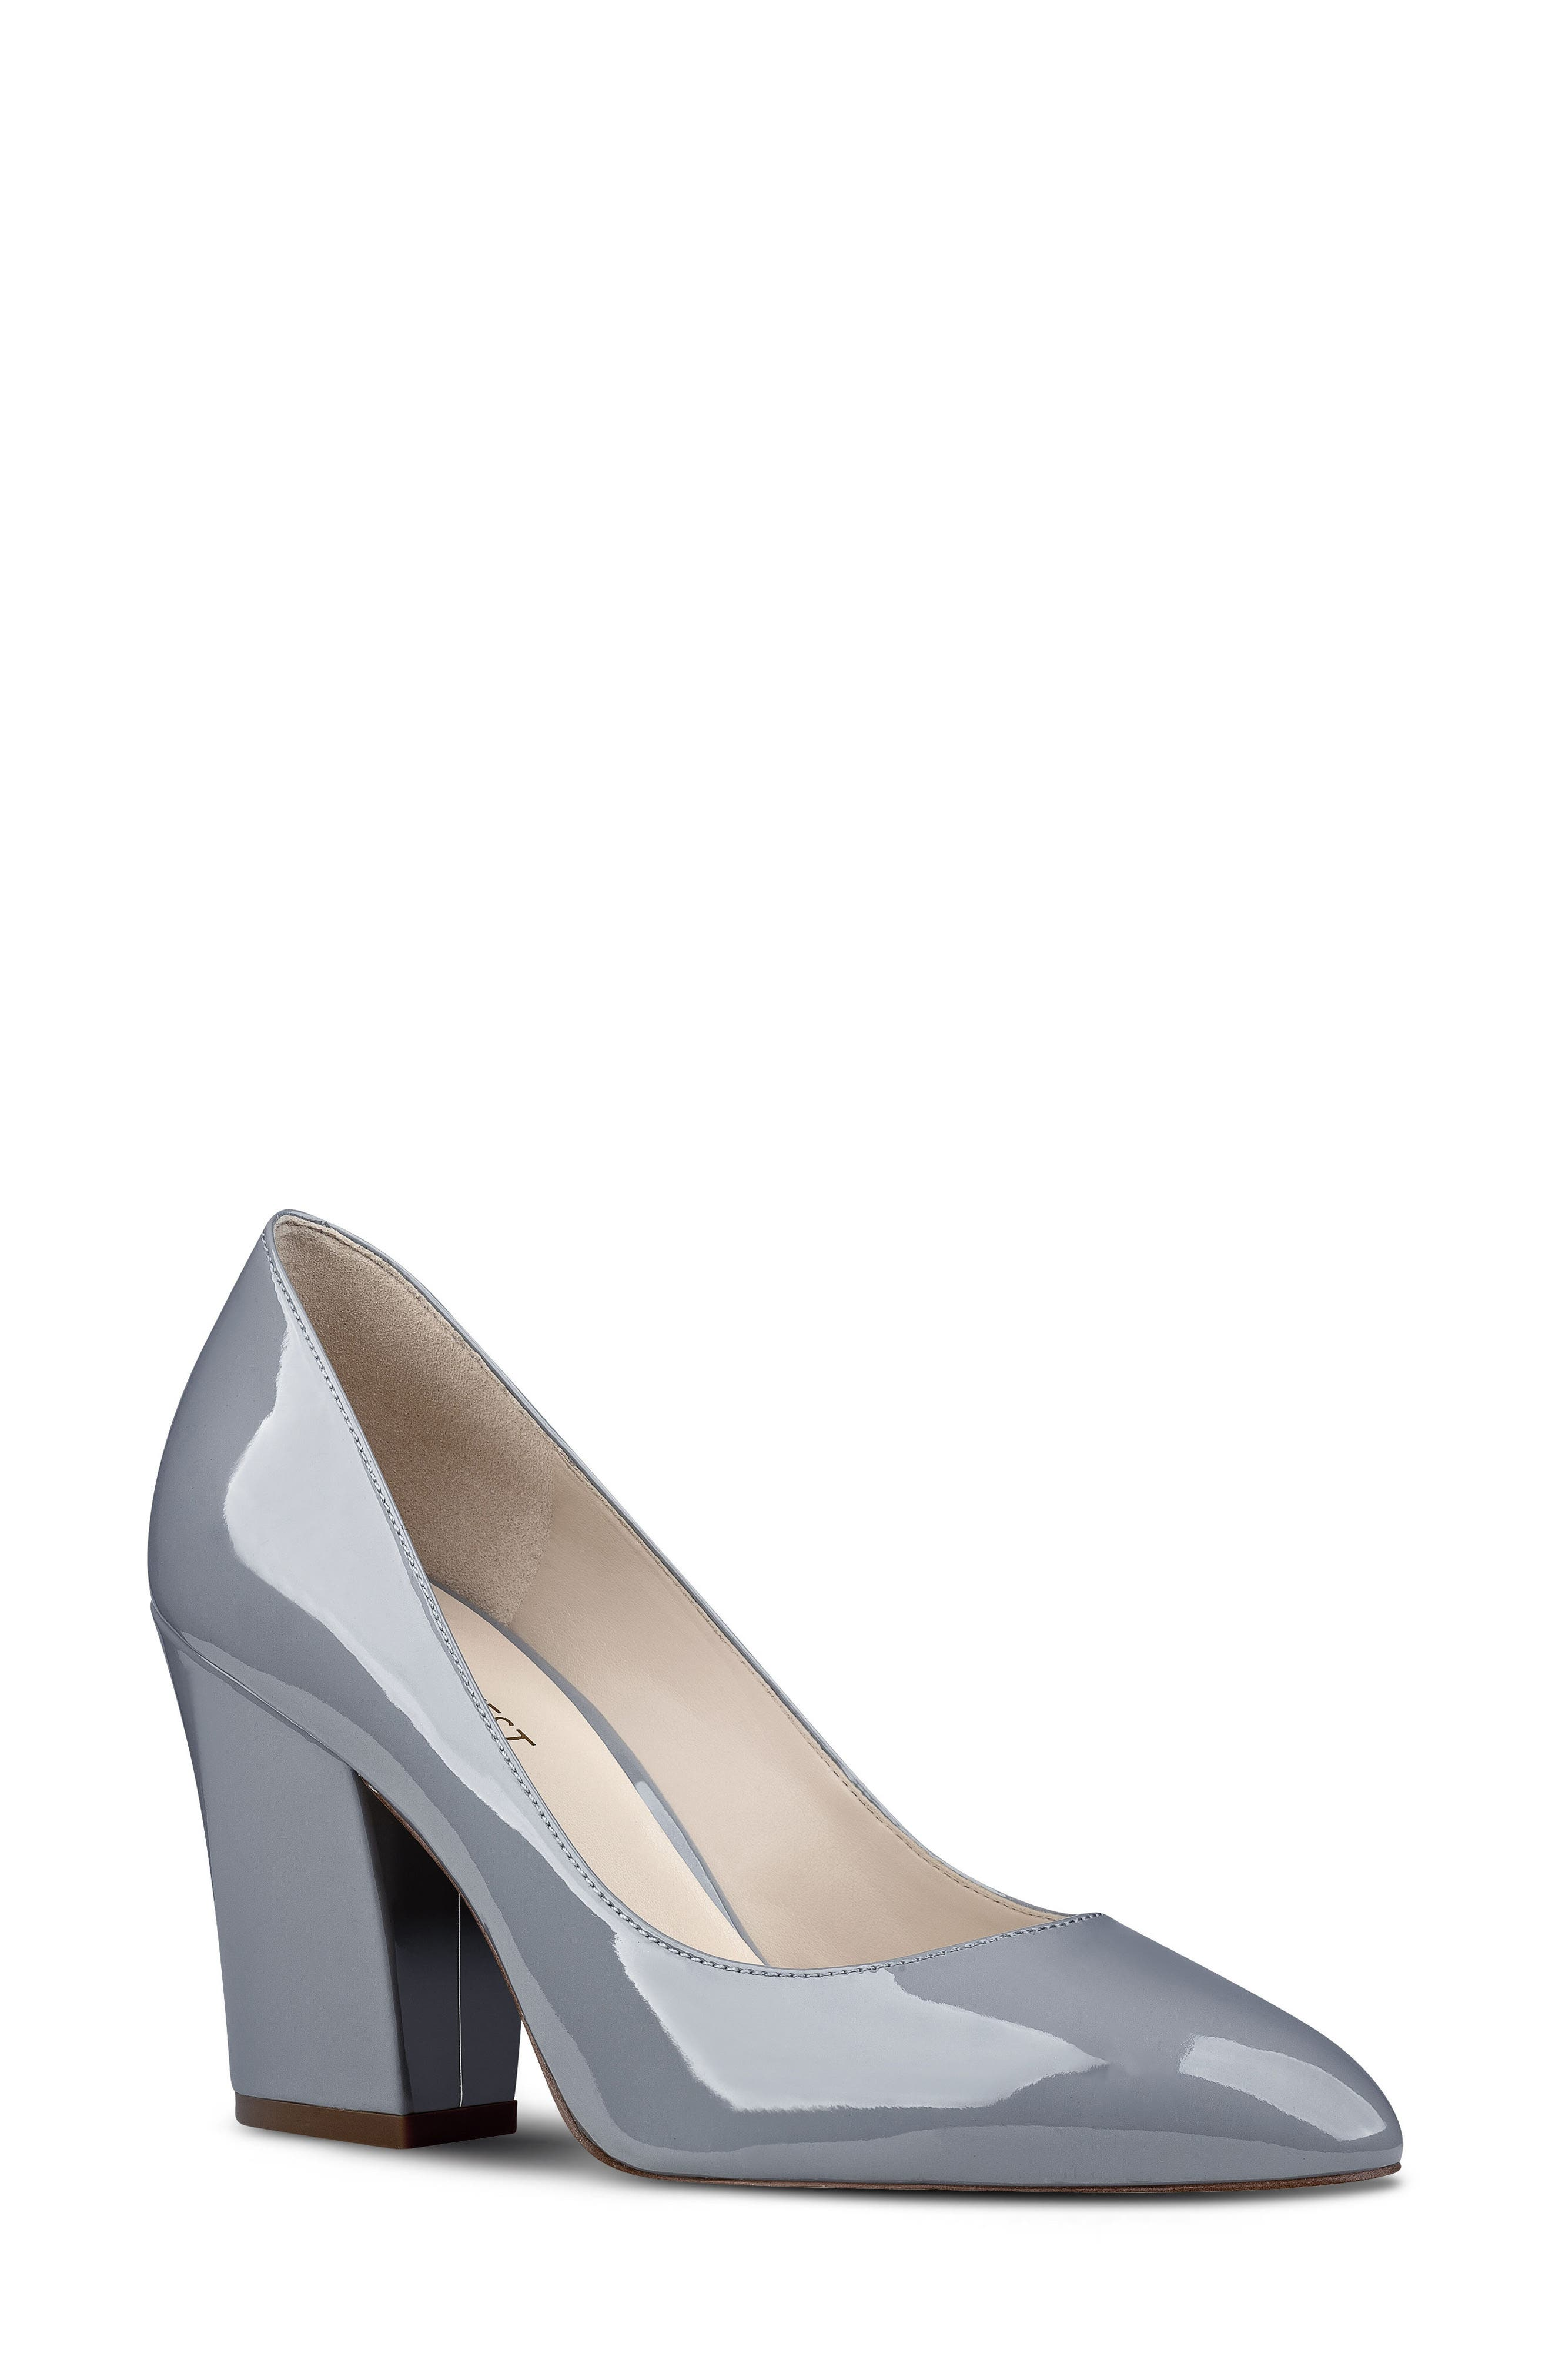 Scheila Pointy Toe Pump,                             Main thumbnail 1, color,                             GREY FAUX LEATHER